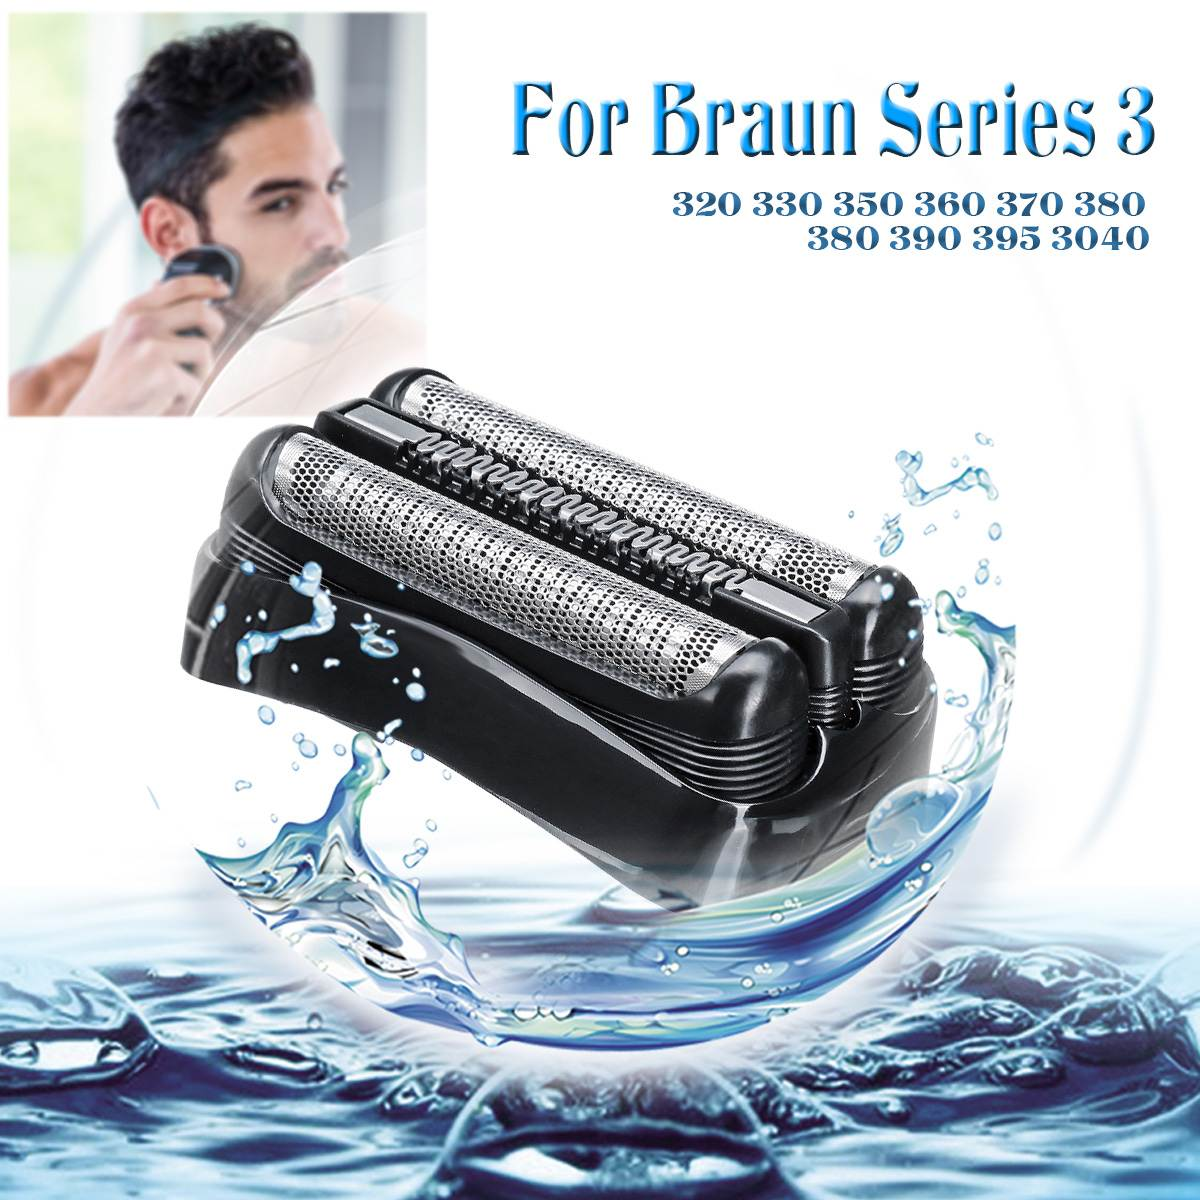 Shaver Blade Foil Head Replacement for Braun Series 3 21B 320 330 350 360 370 380 380 390 Stainless Steel Razor Cutter Head Foil|Personal Care Appliance Parts| |  - title=